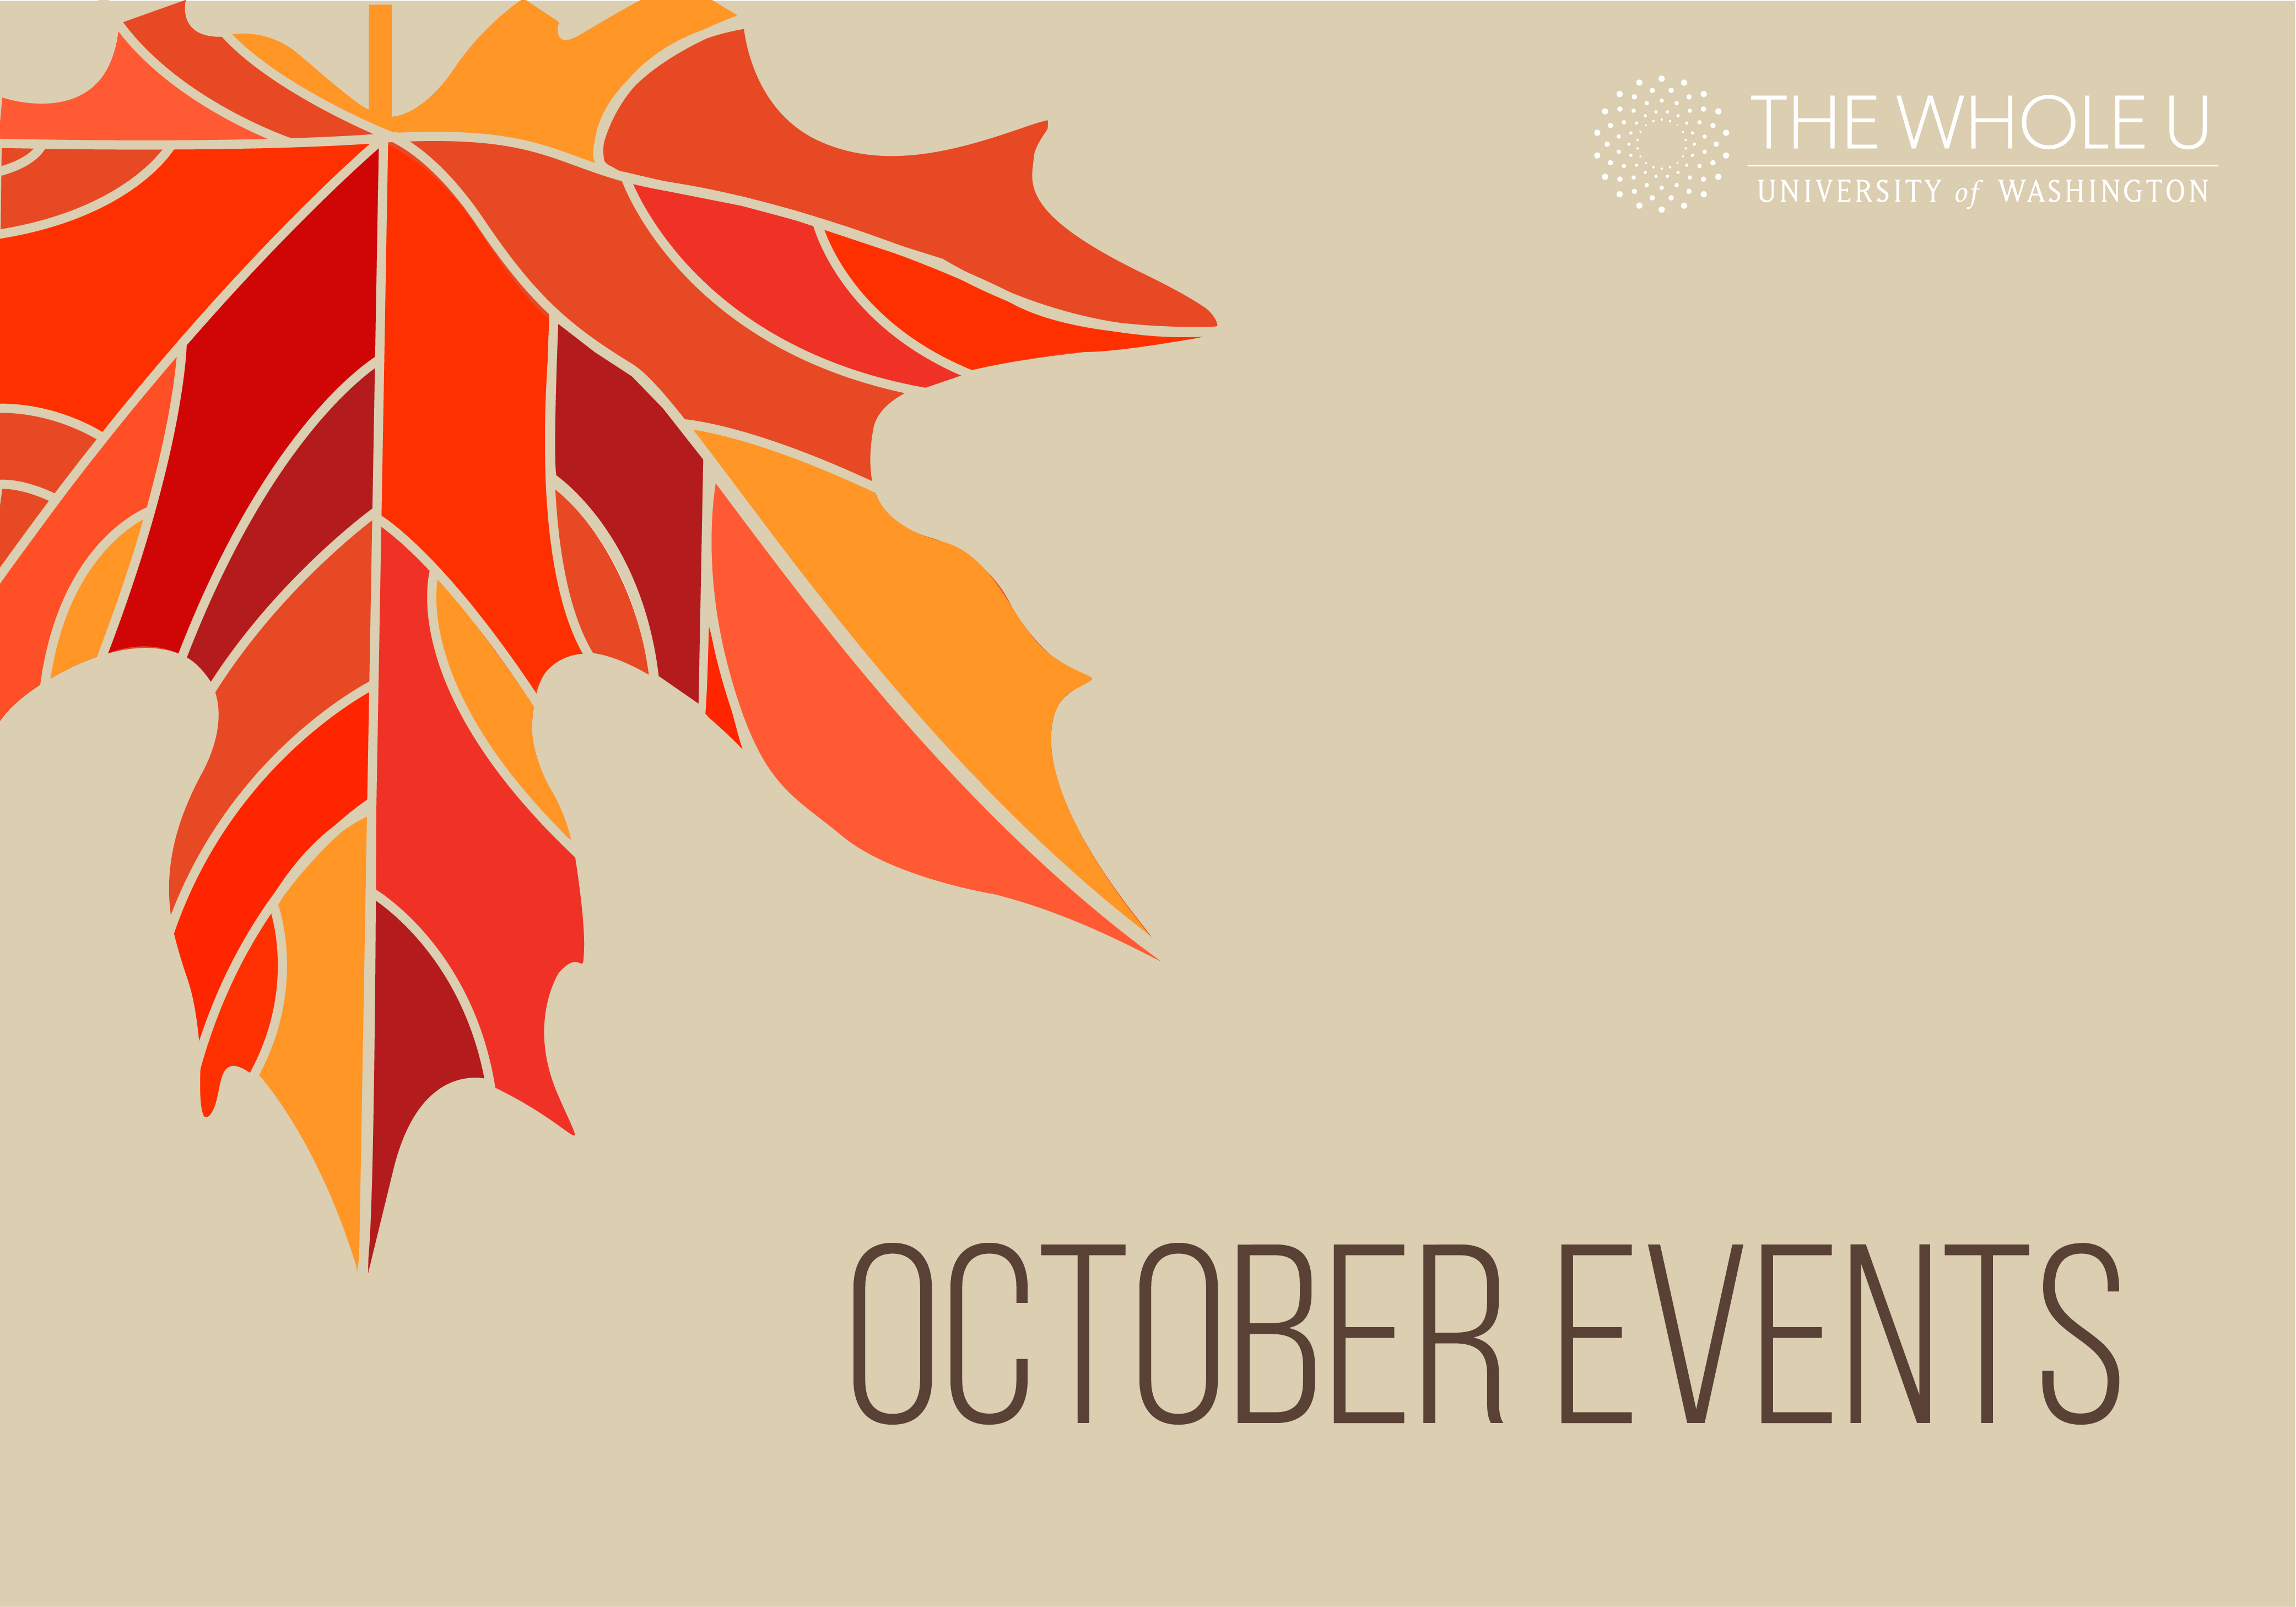 9 October Events The Whole U